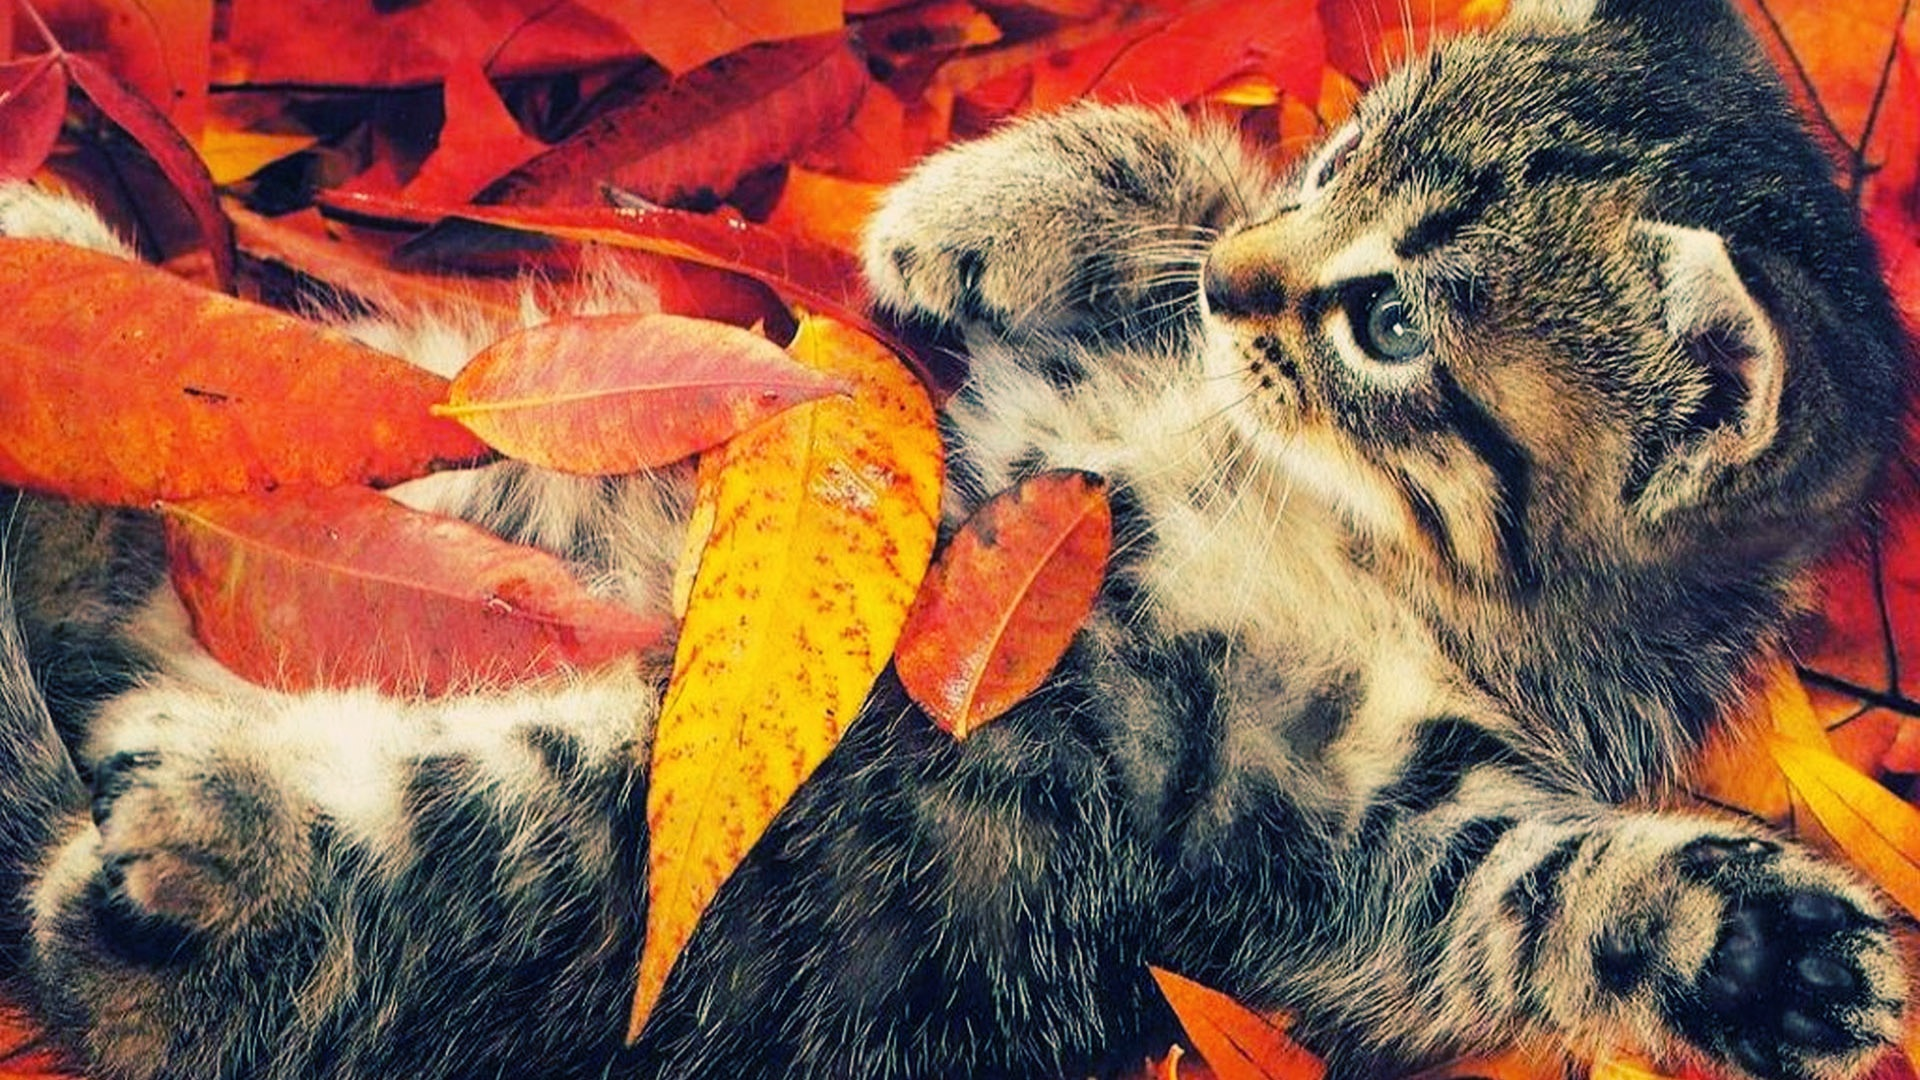 autumn wallpaper life animal wallpapers backgrounds 1920x1080